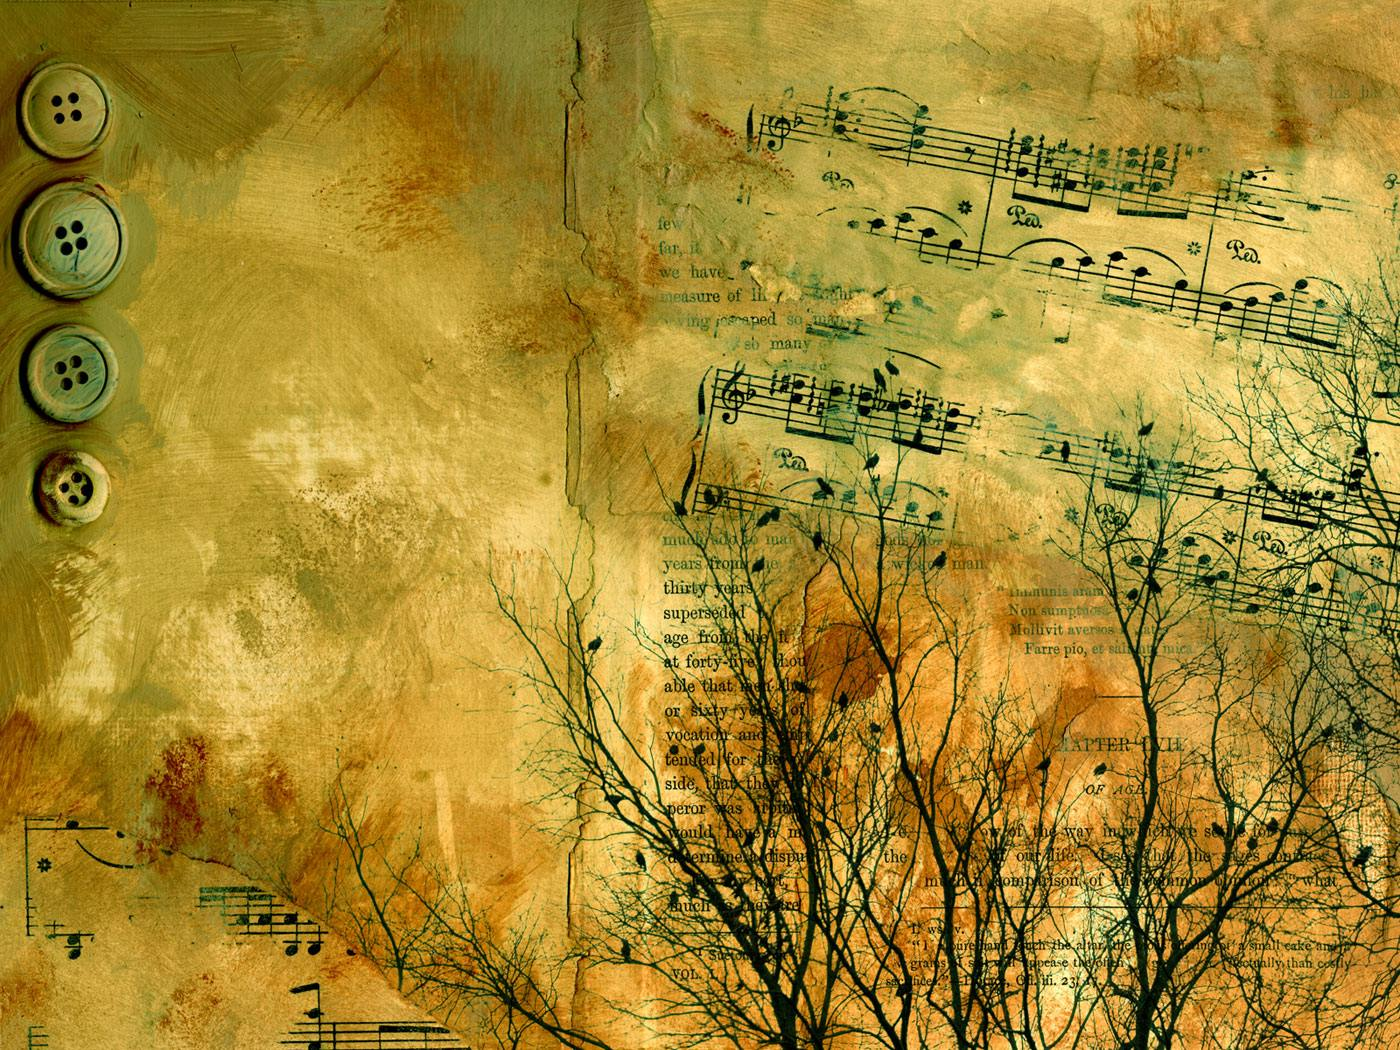 Free Download Music Wallpaper Music Notes Wallpapers 1400x1050